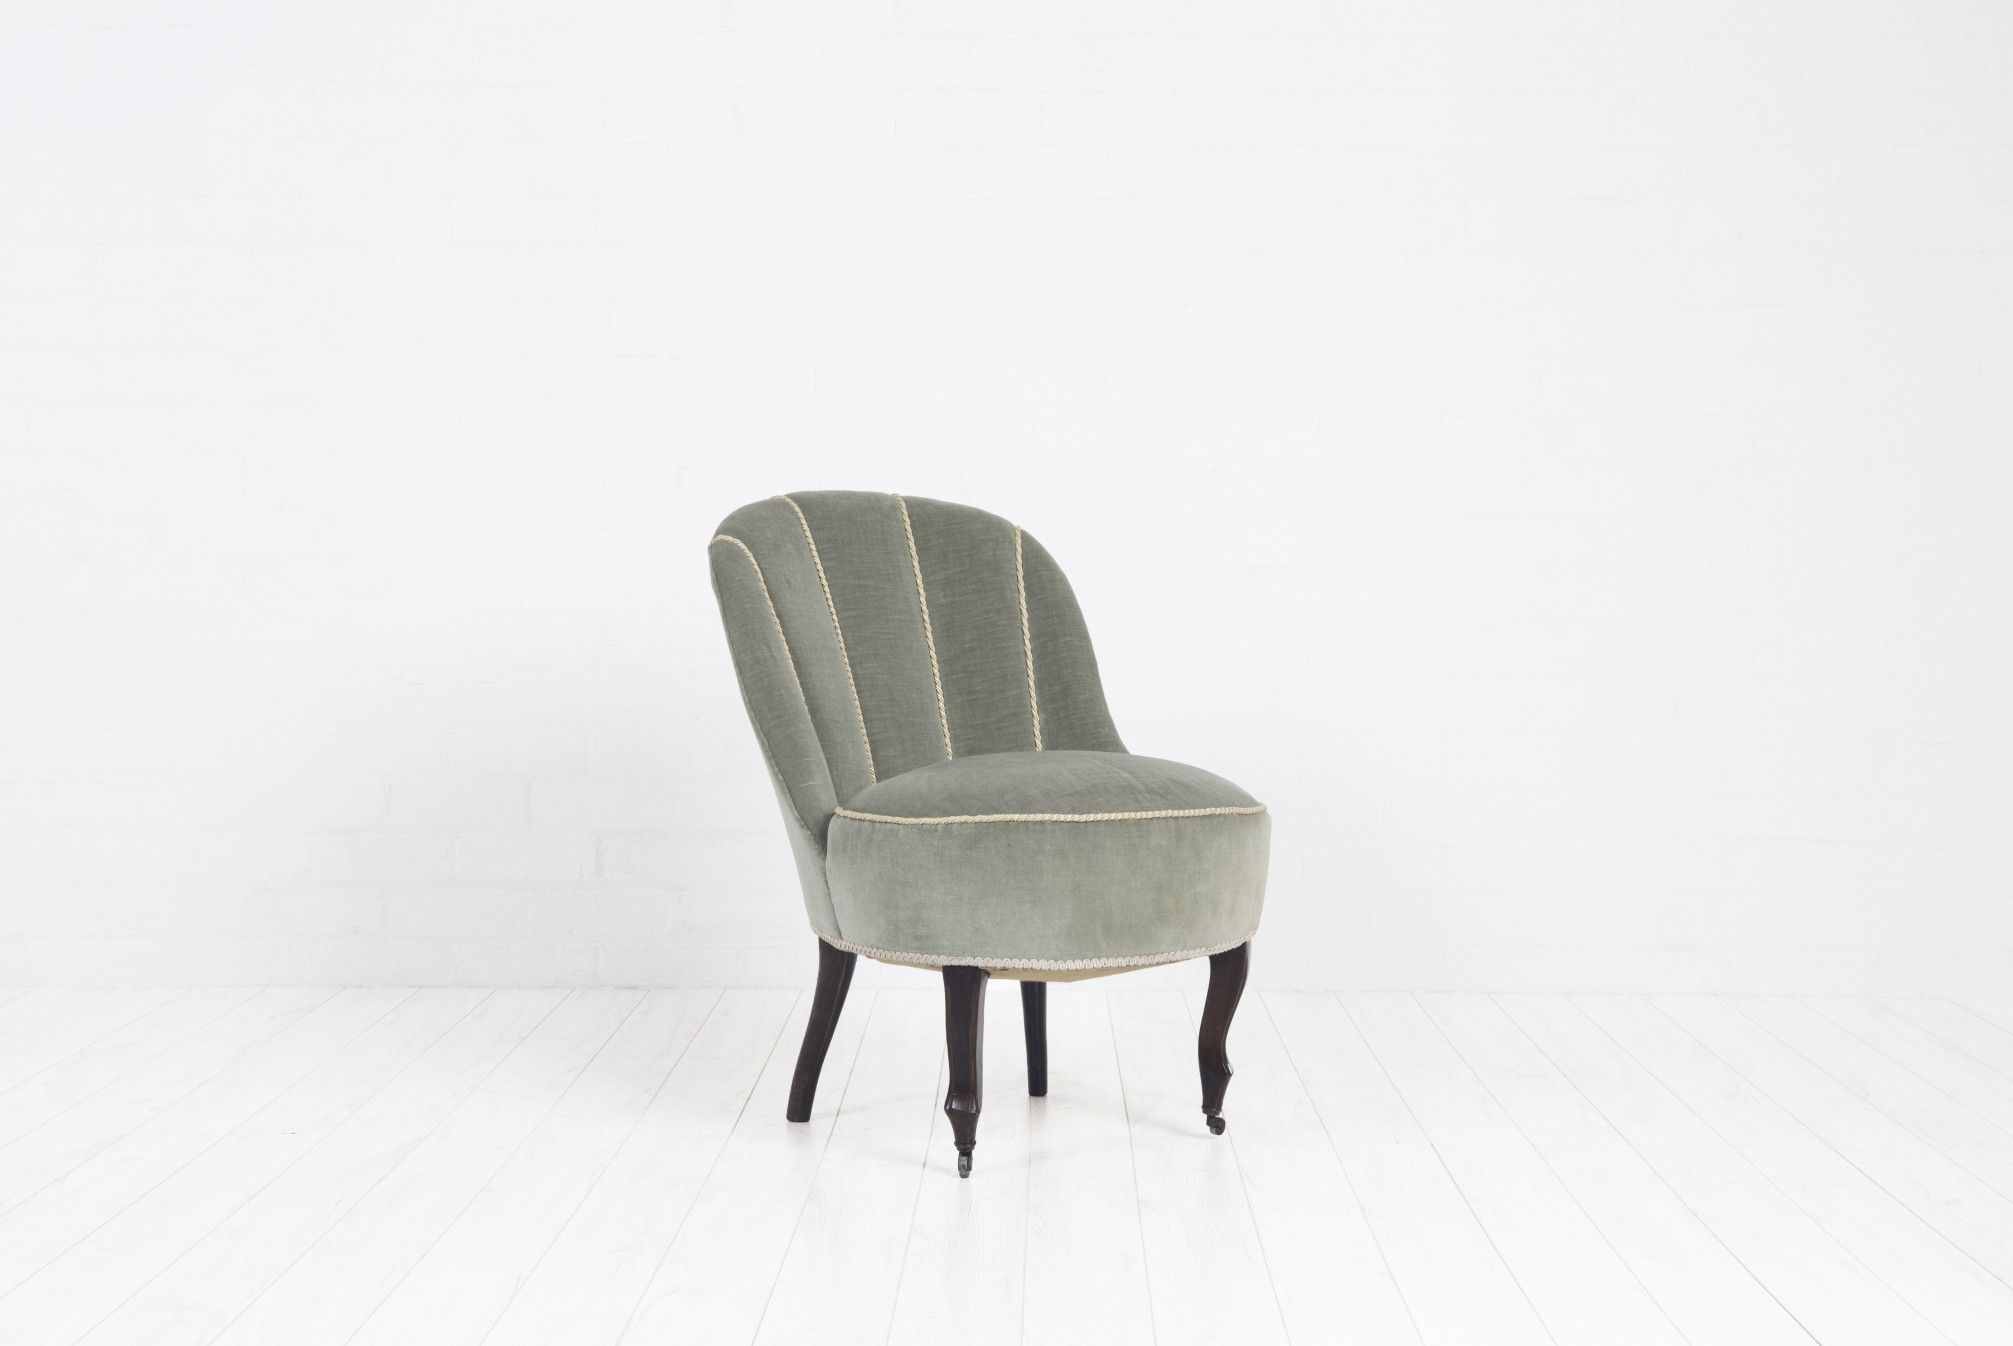 Velvet Bedroom Chair | Shopping for... Accent Chairs | Pinterest ...